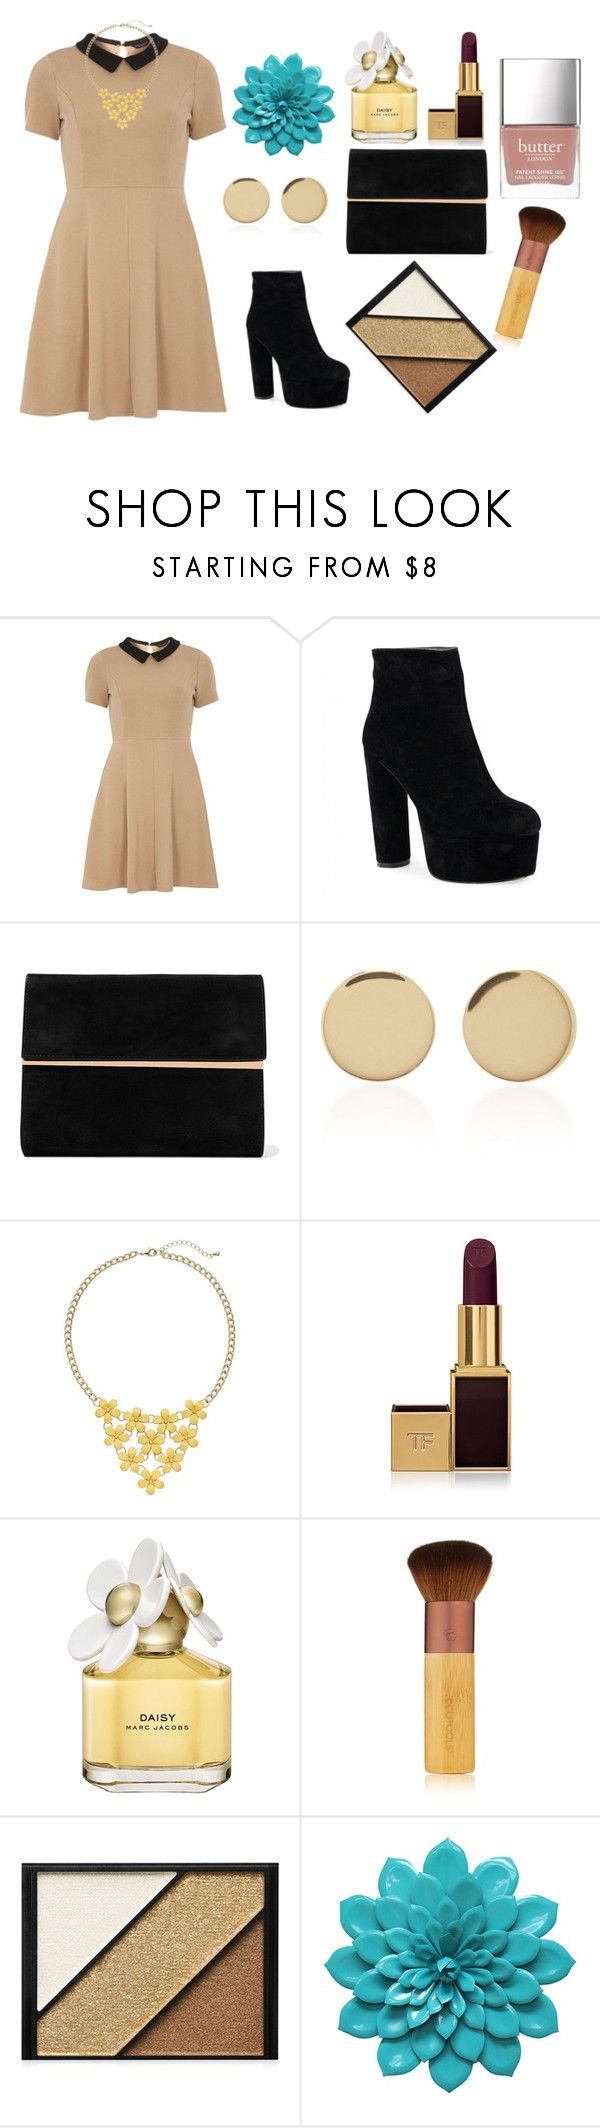 """Untitled #97"" by lenka-skodiova on Polyvore featuring mel, Maison Margiela, Magdalena Frackowiak, Tom Ford, Marc Jacobs, EcoTools, Elizabeth Arden and Butter London"